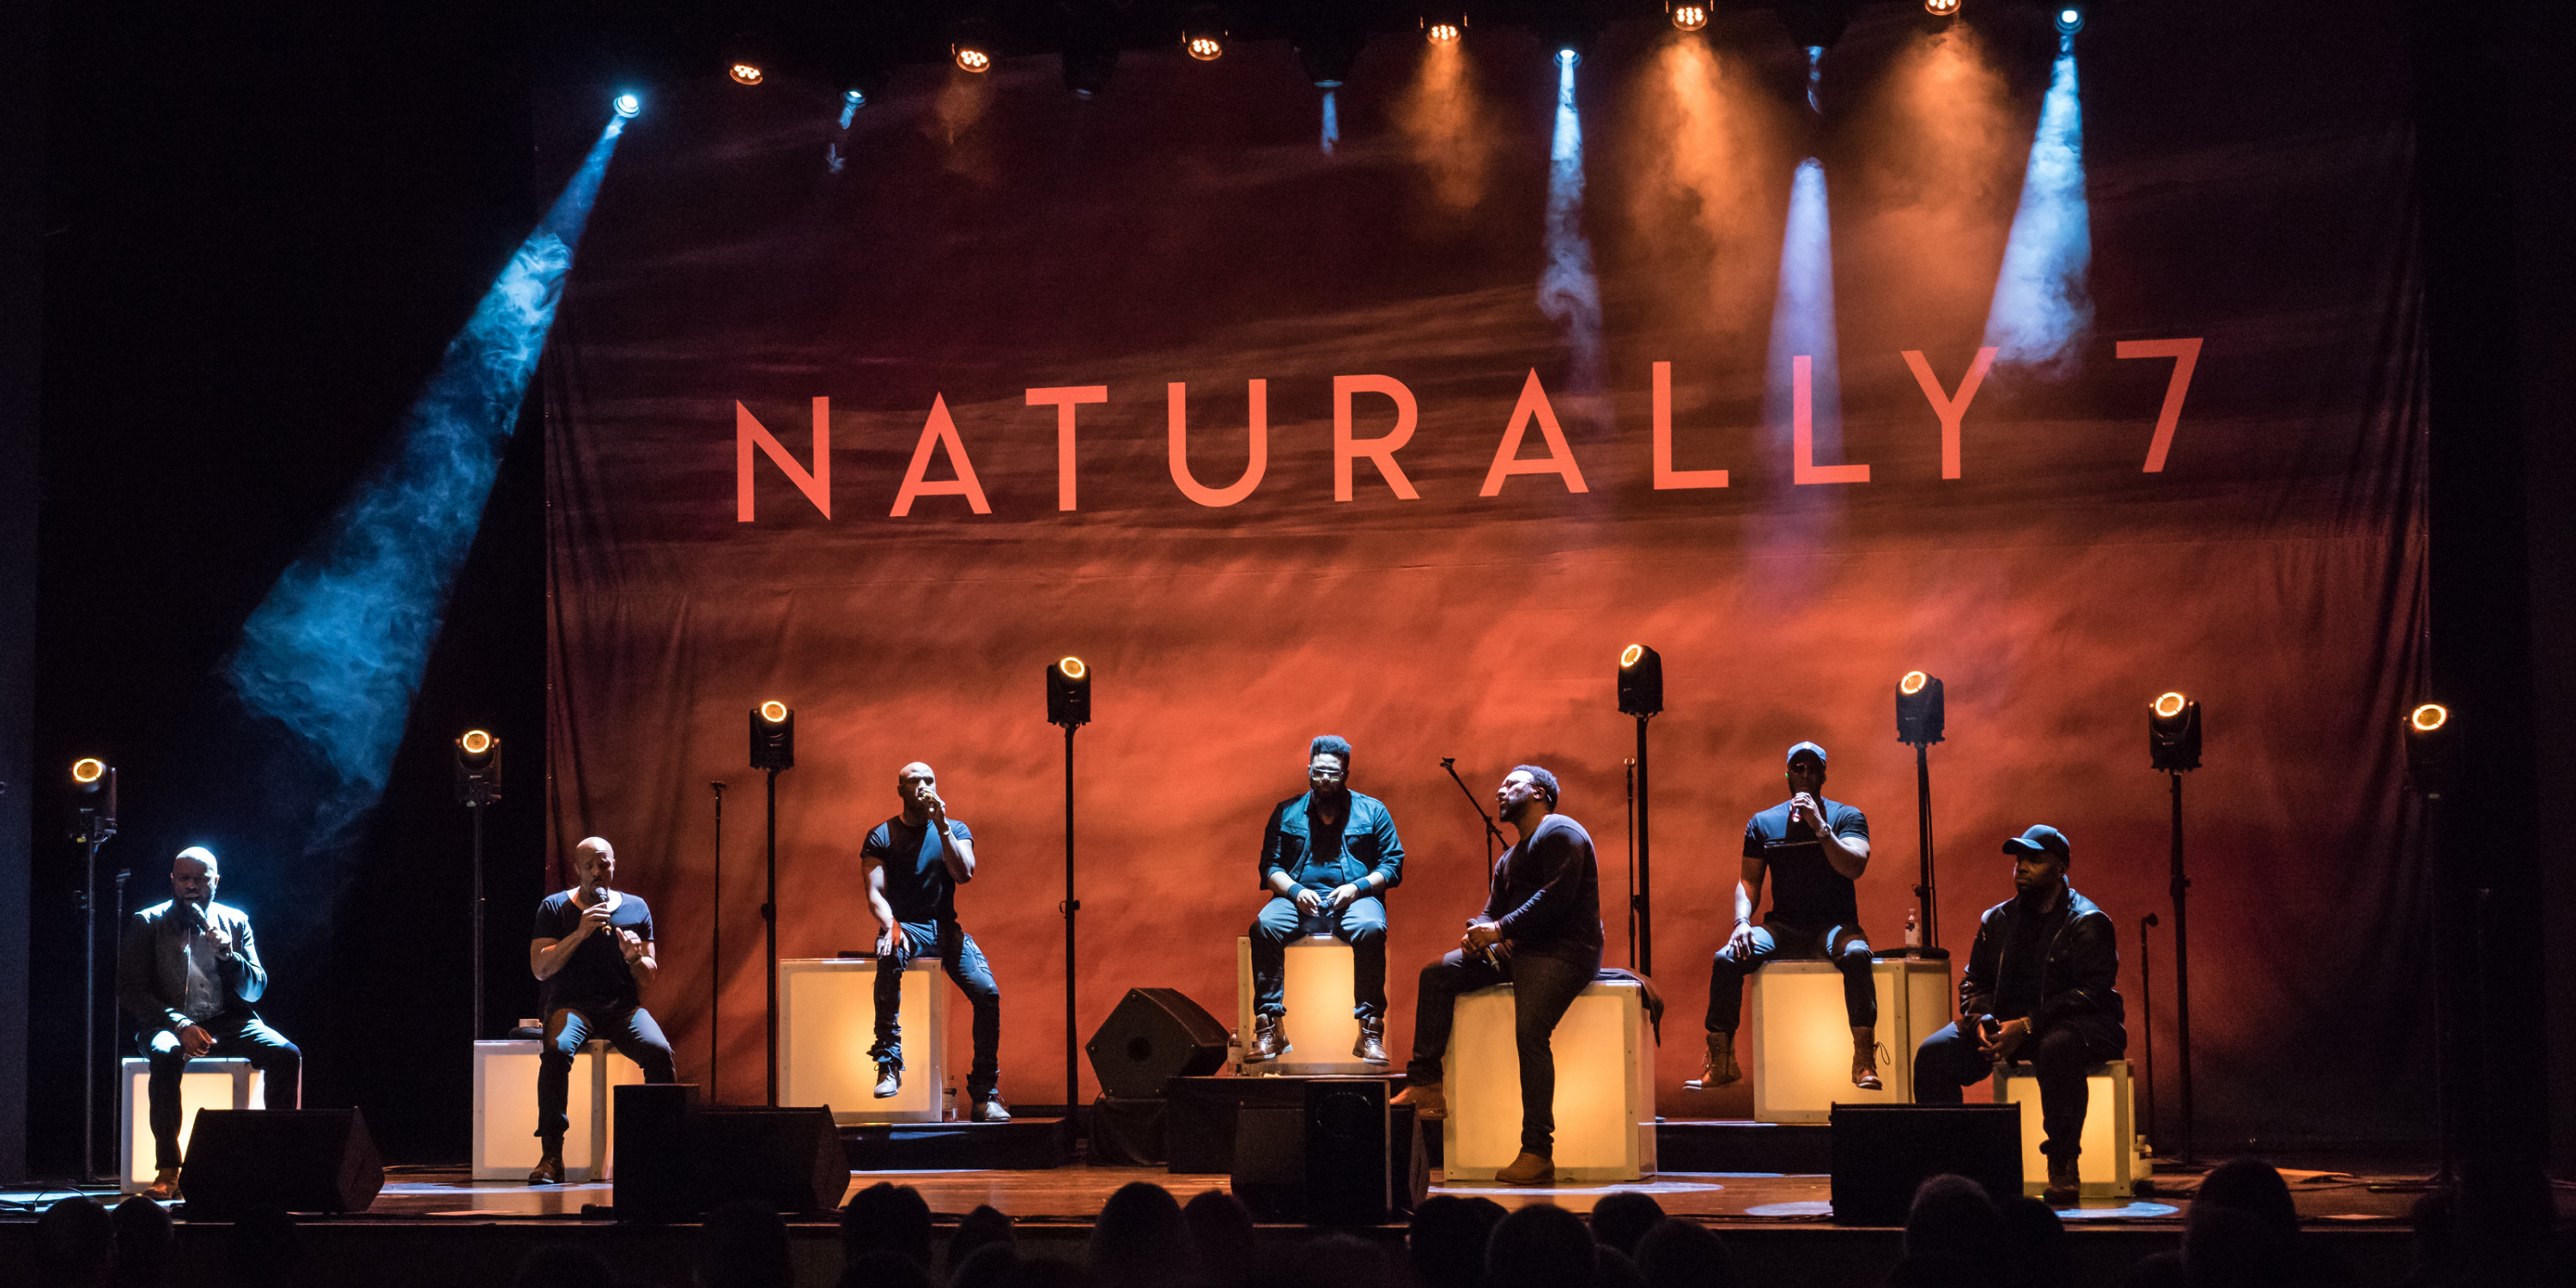 I Naturally 7 in tournée in Germania con Cameo Light e Gravity